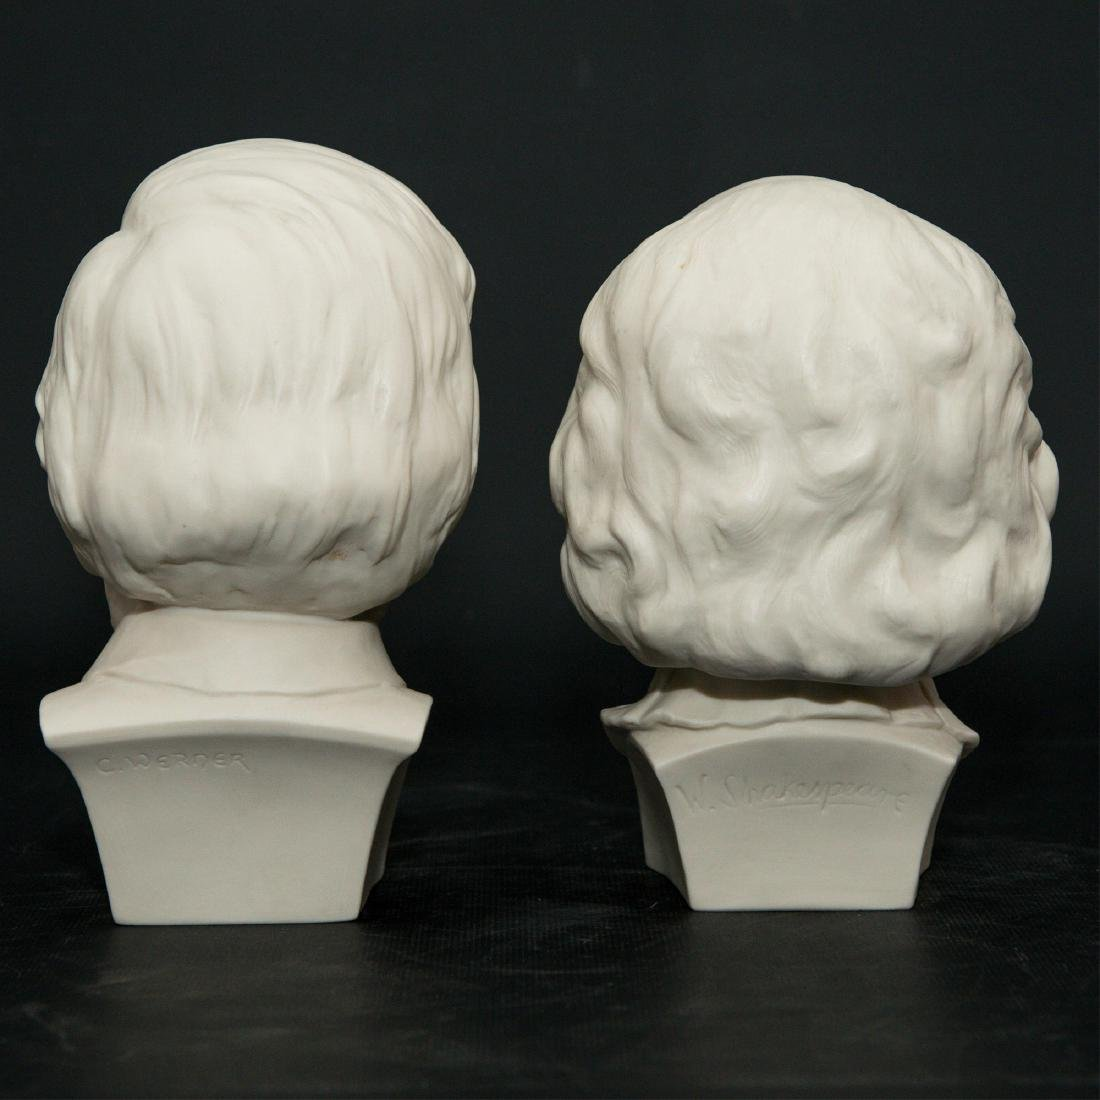 PAIR OF HUTSCHENREUTHER BISQUE PORCELAIN BUSTS - 2